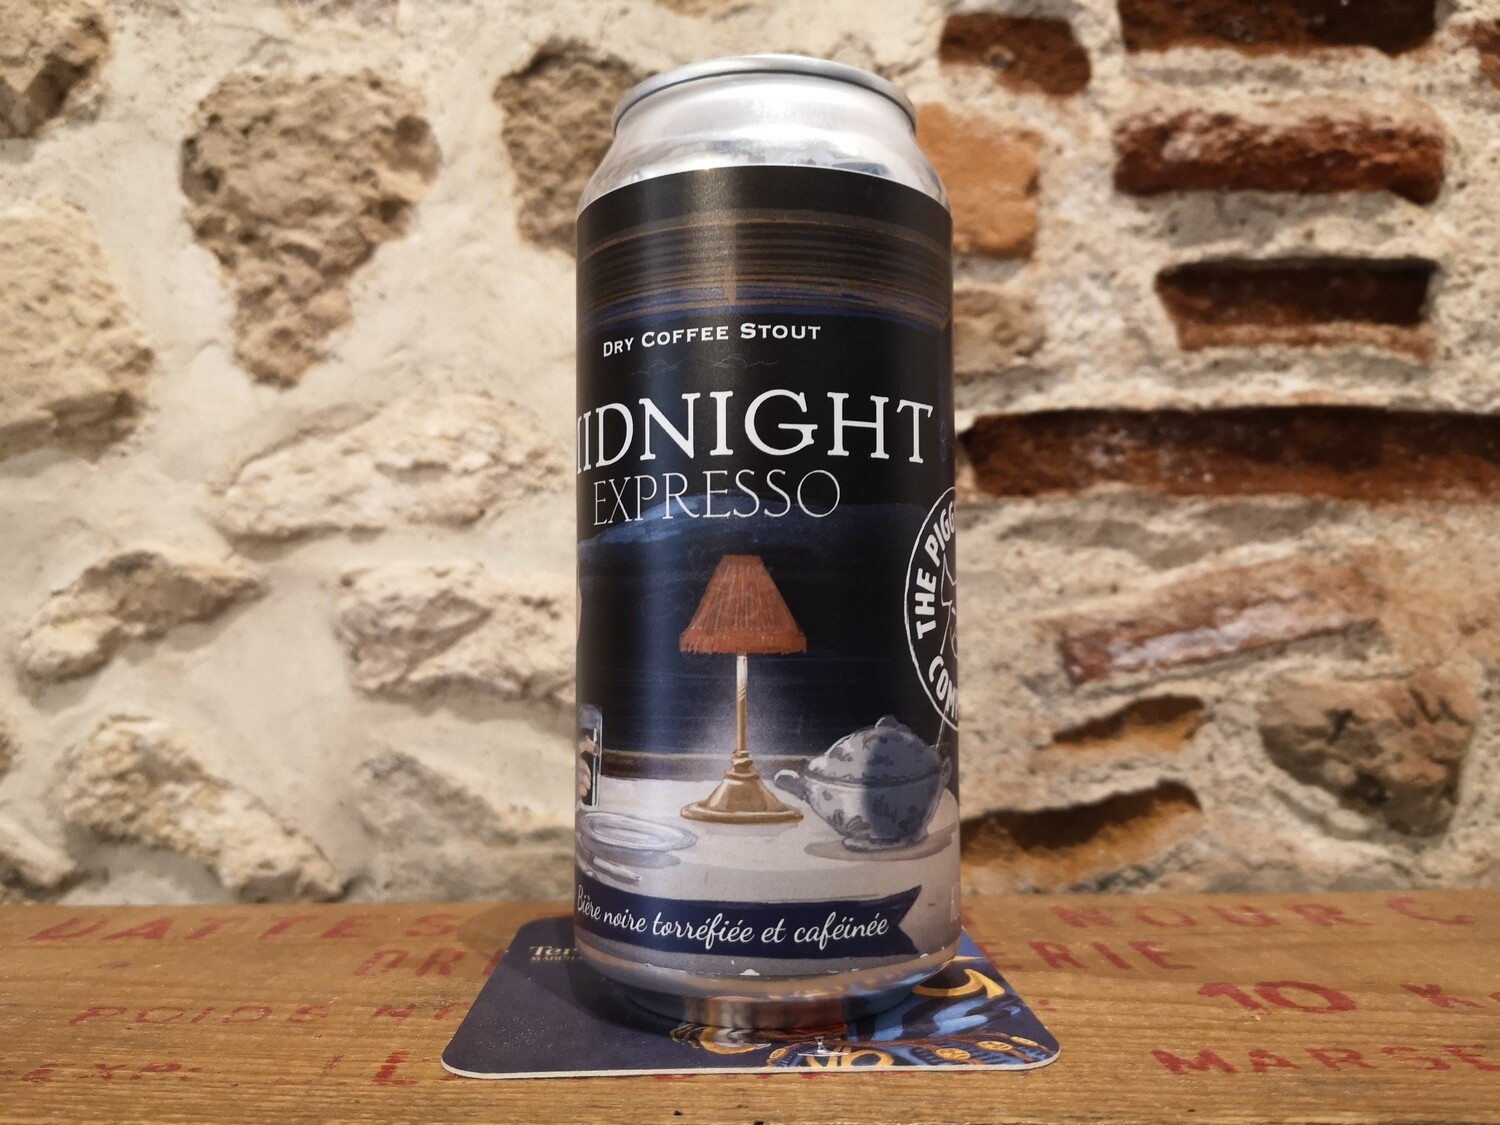 Midnight Expresso, coffee stout 6%